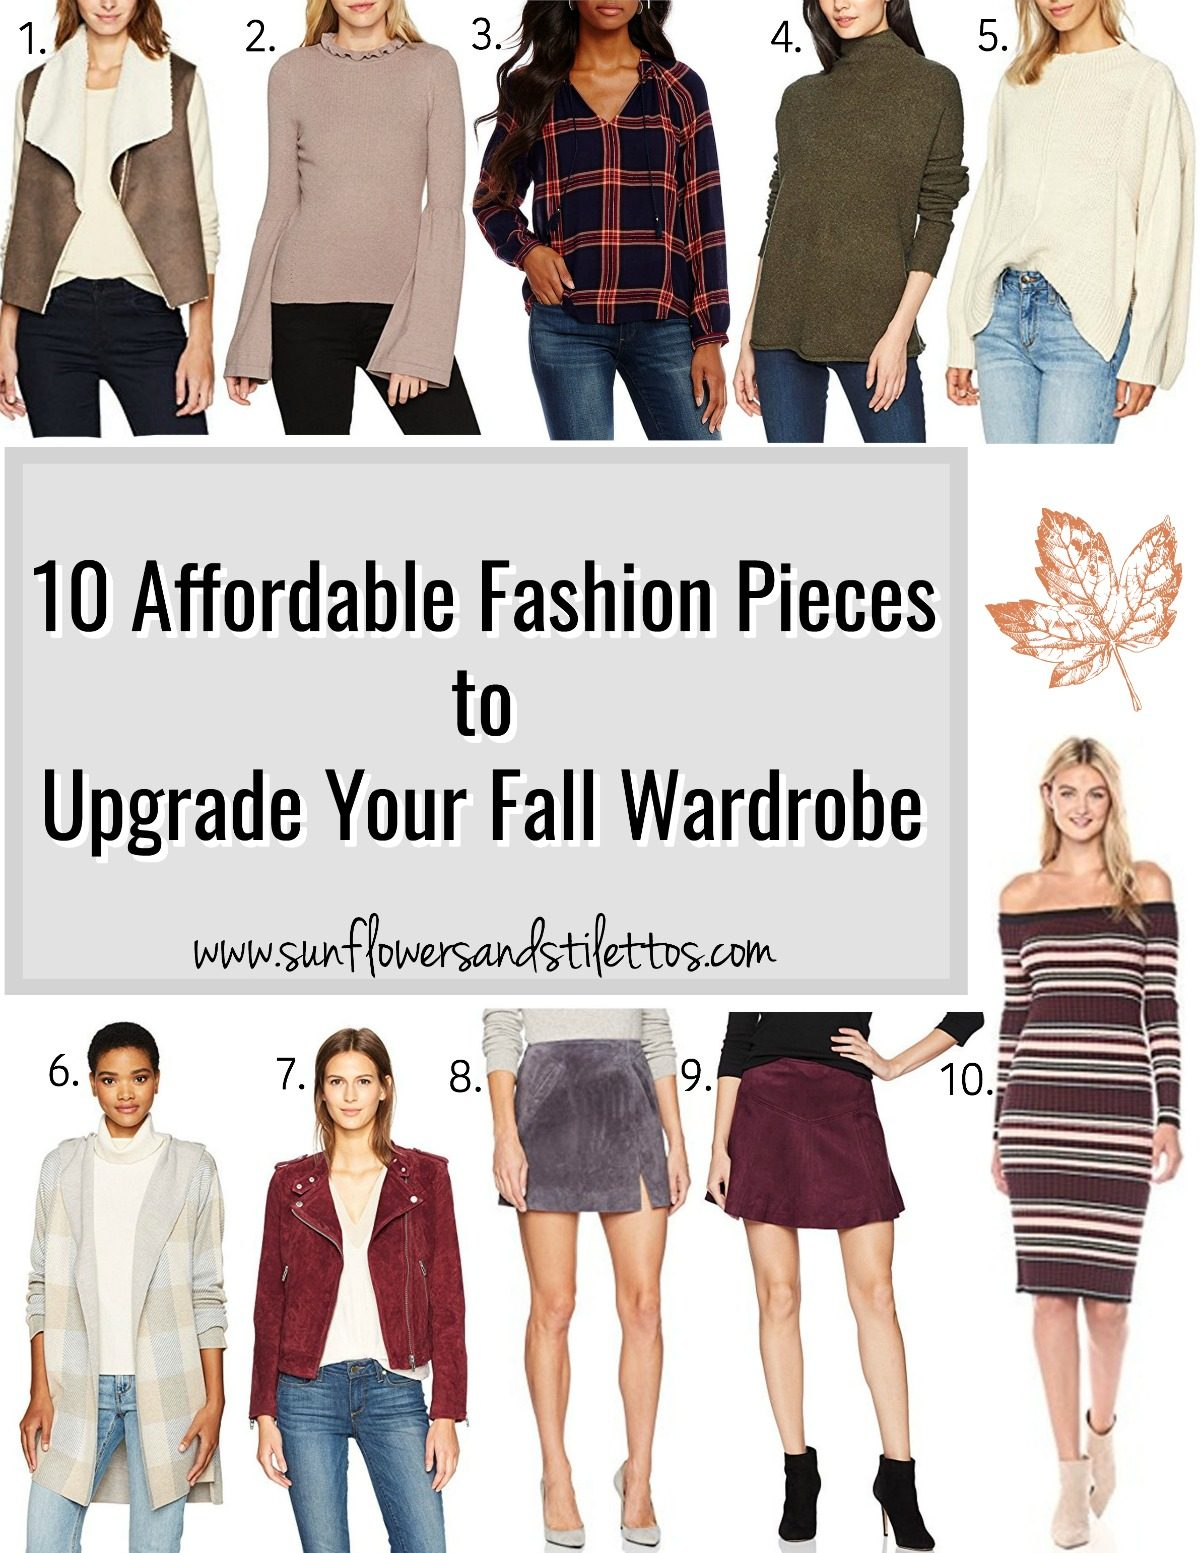 10 Affordable Fashion Pieces to Upgrade Your Fall Wardrobe